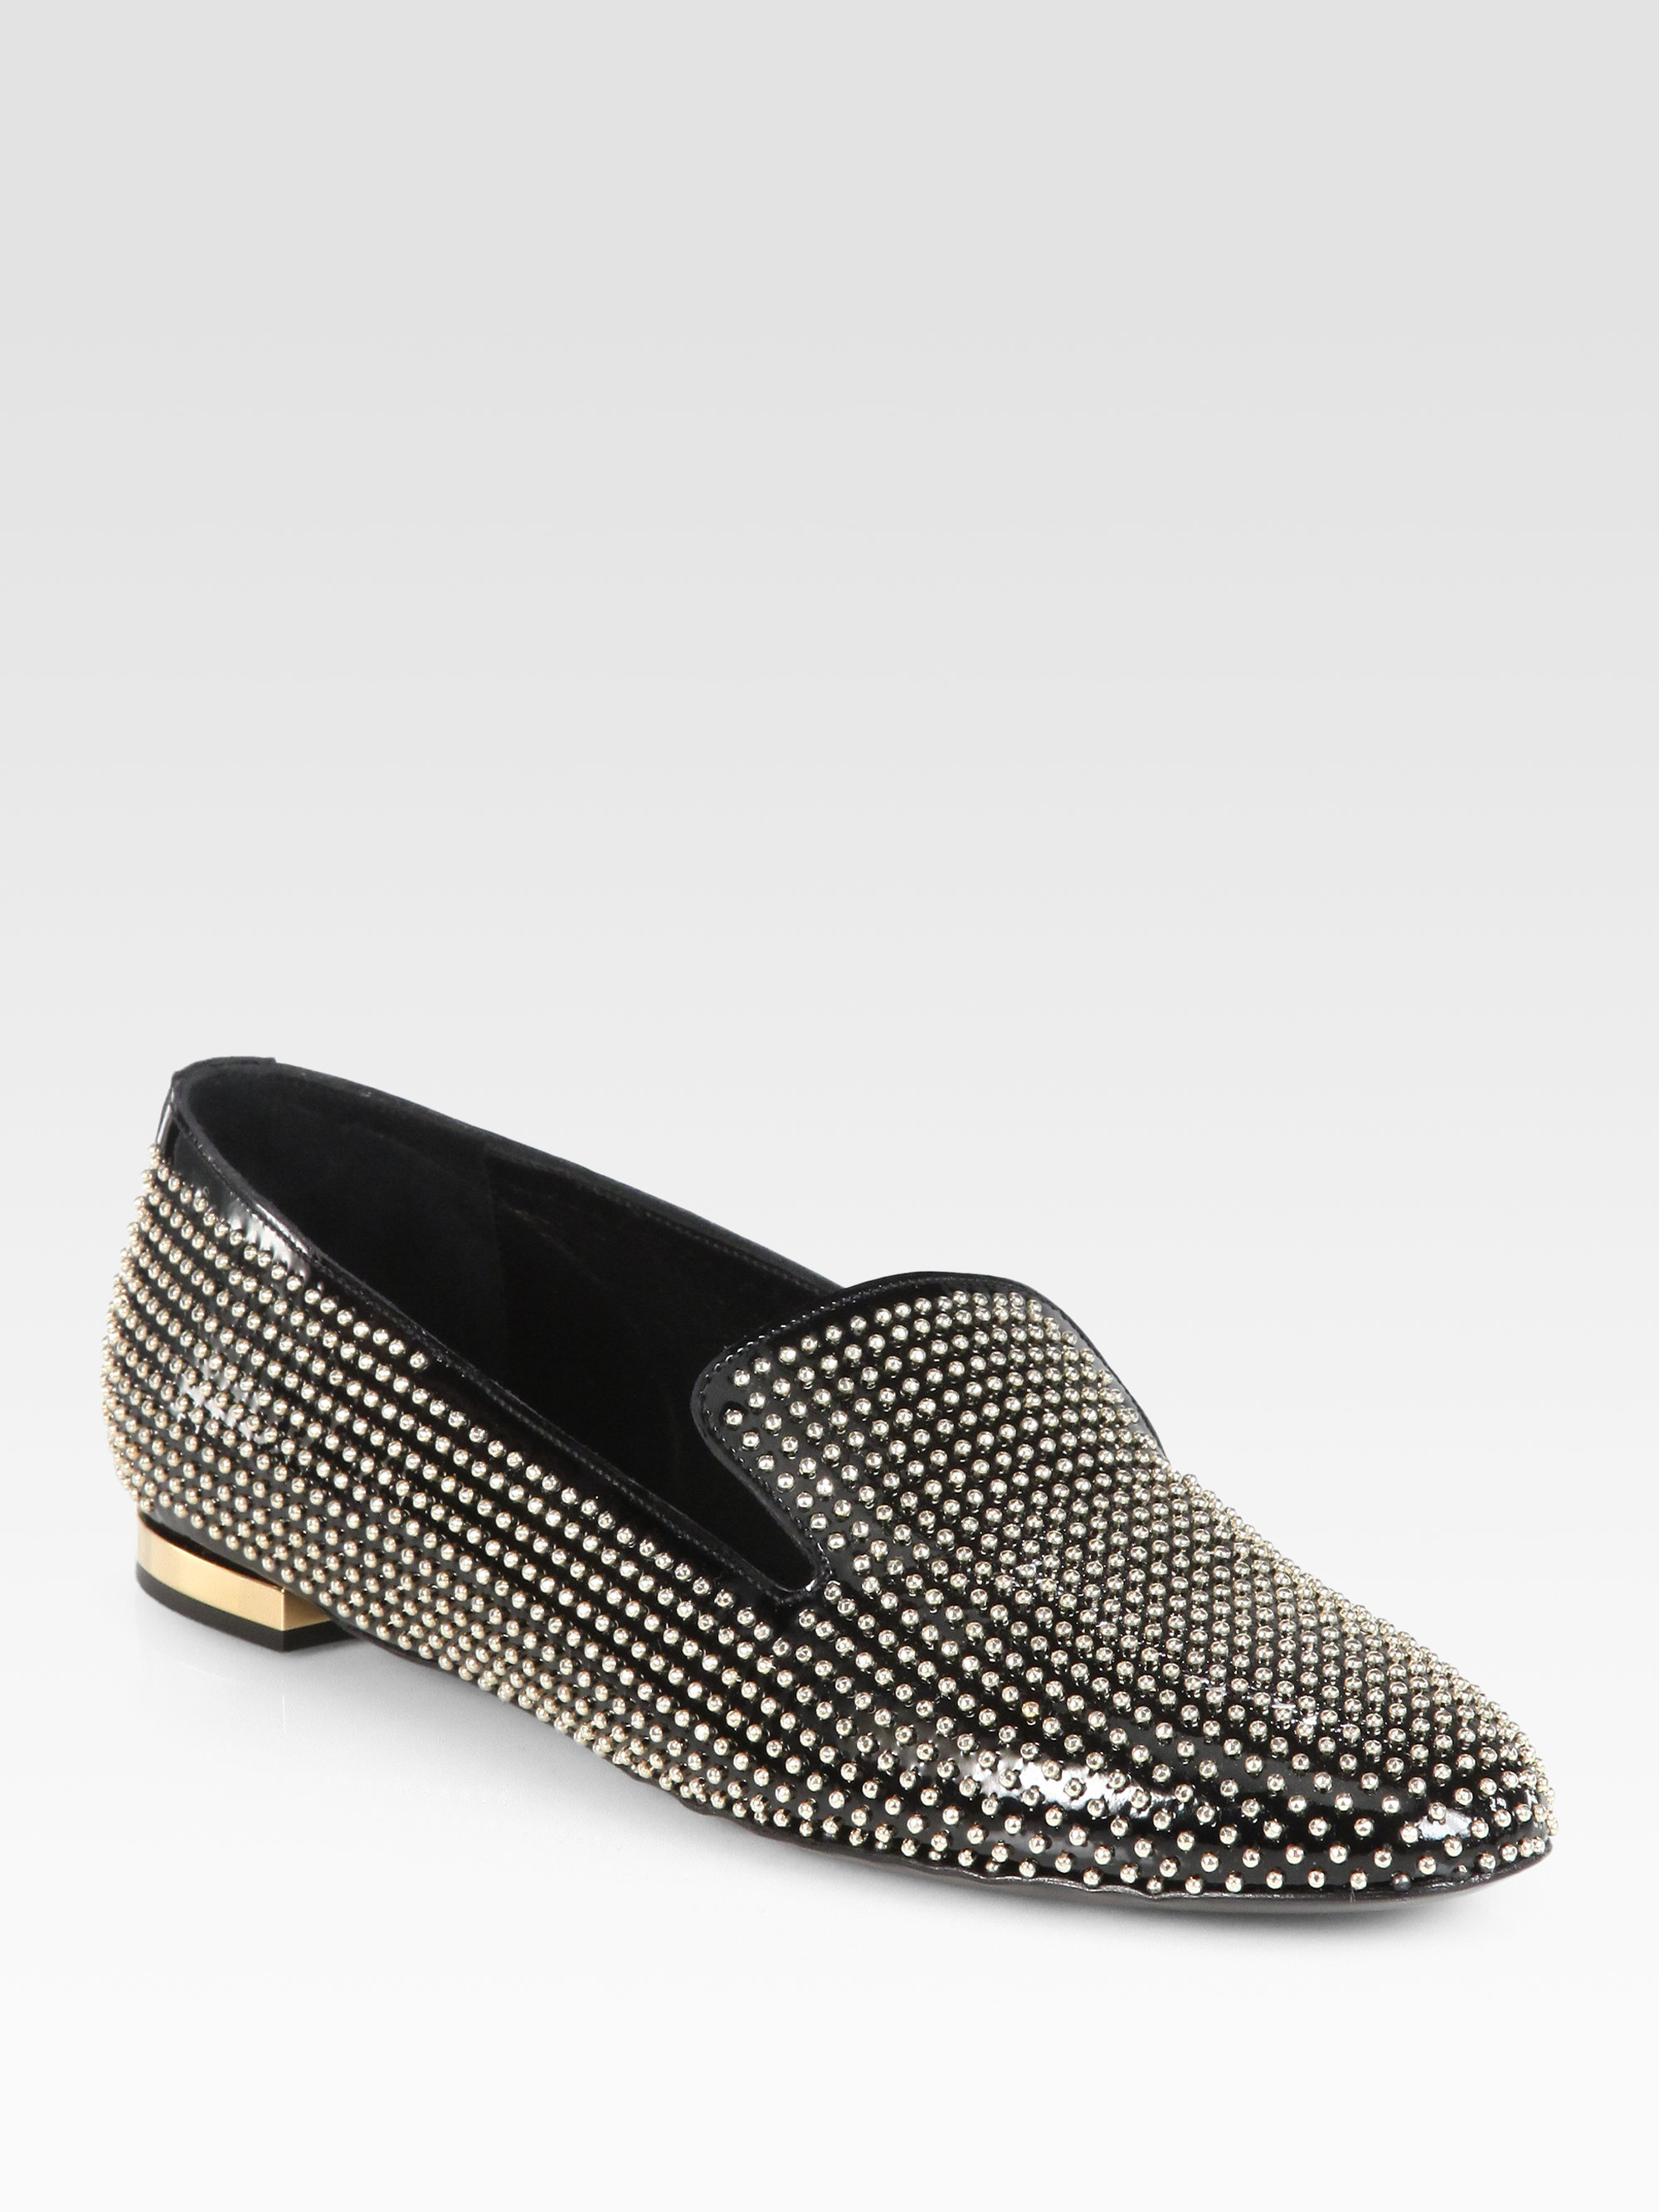 fd895d320c3 Lyst - Burberry Prorsum Studded Patent Leather Smoking Slippers in ...